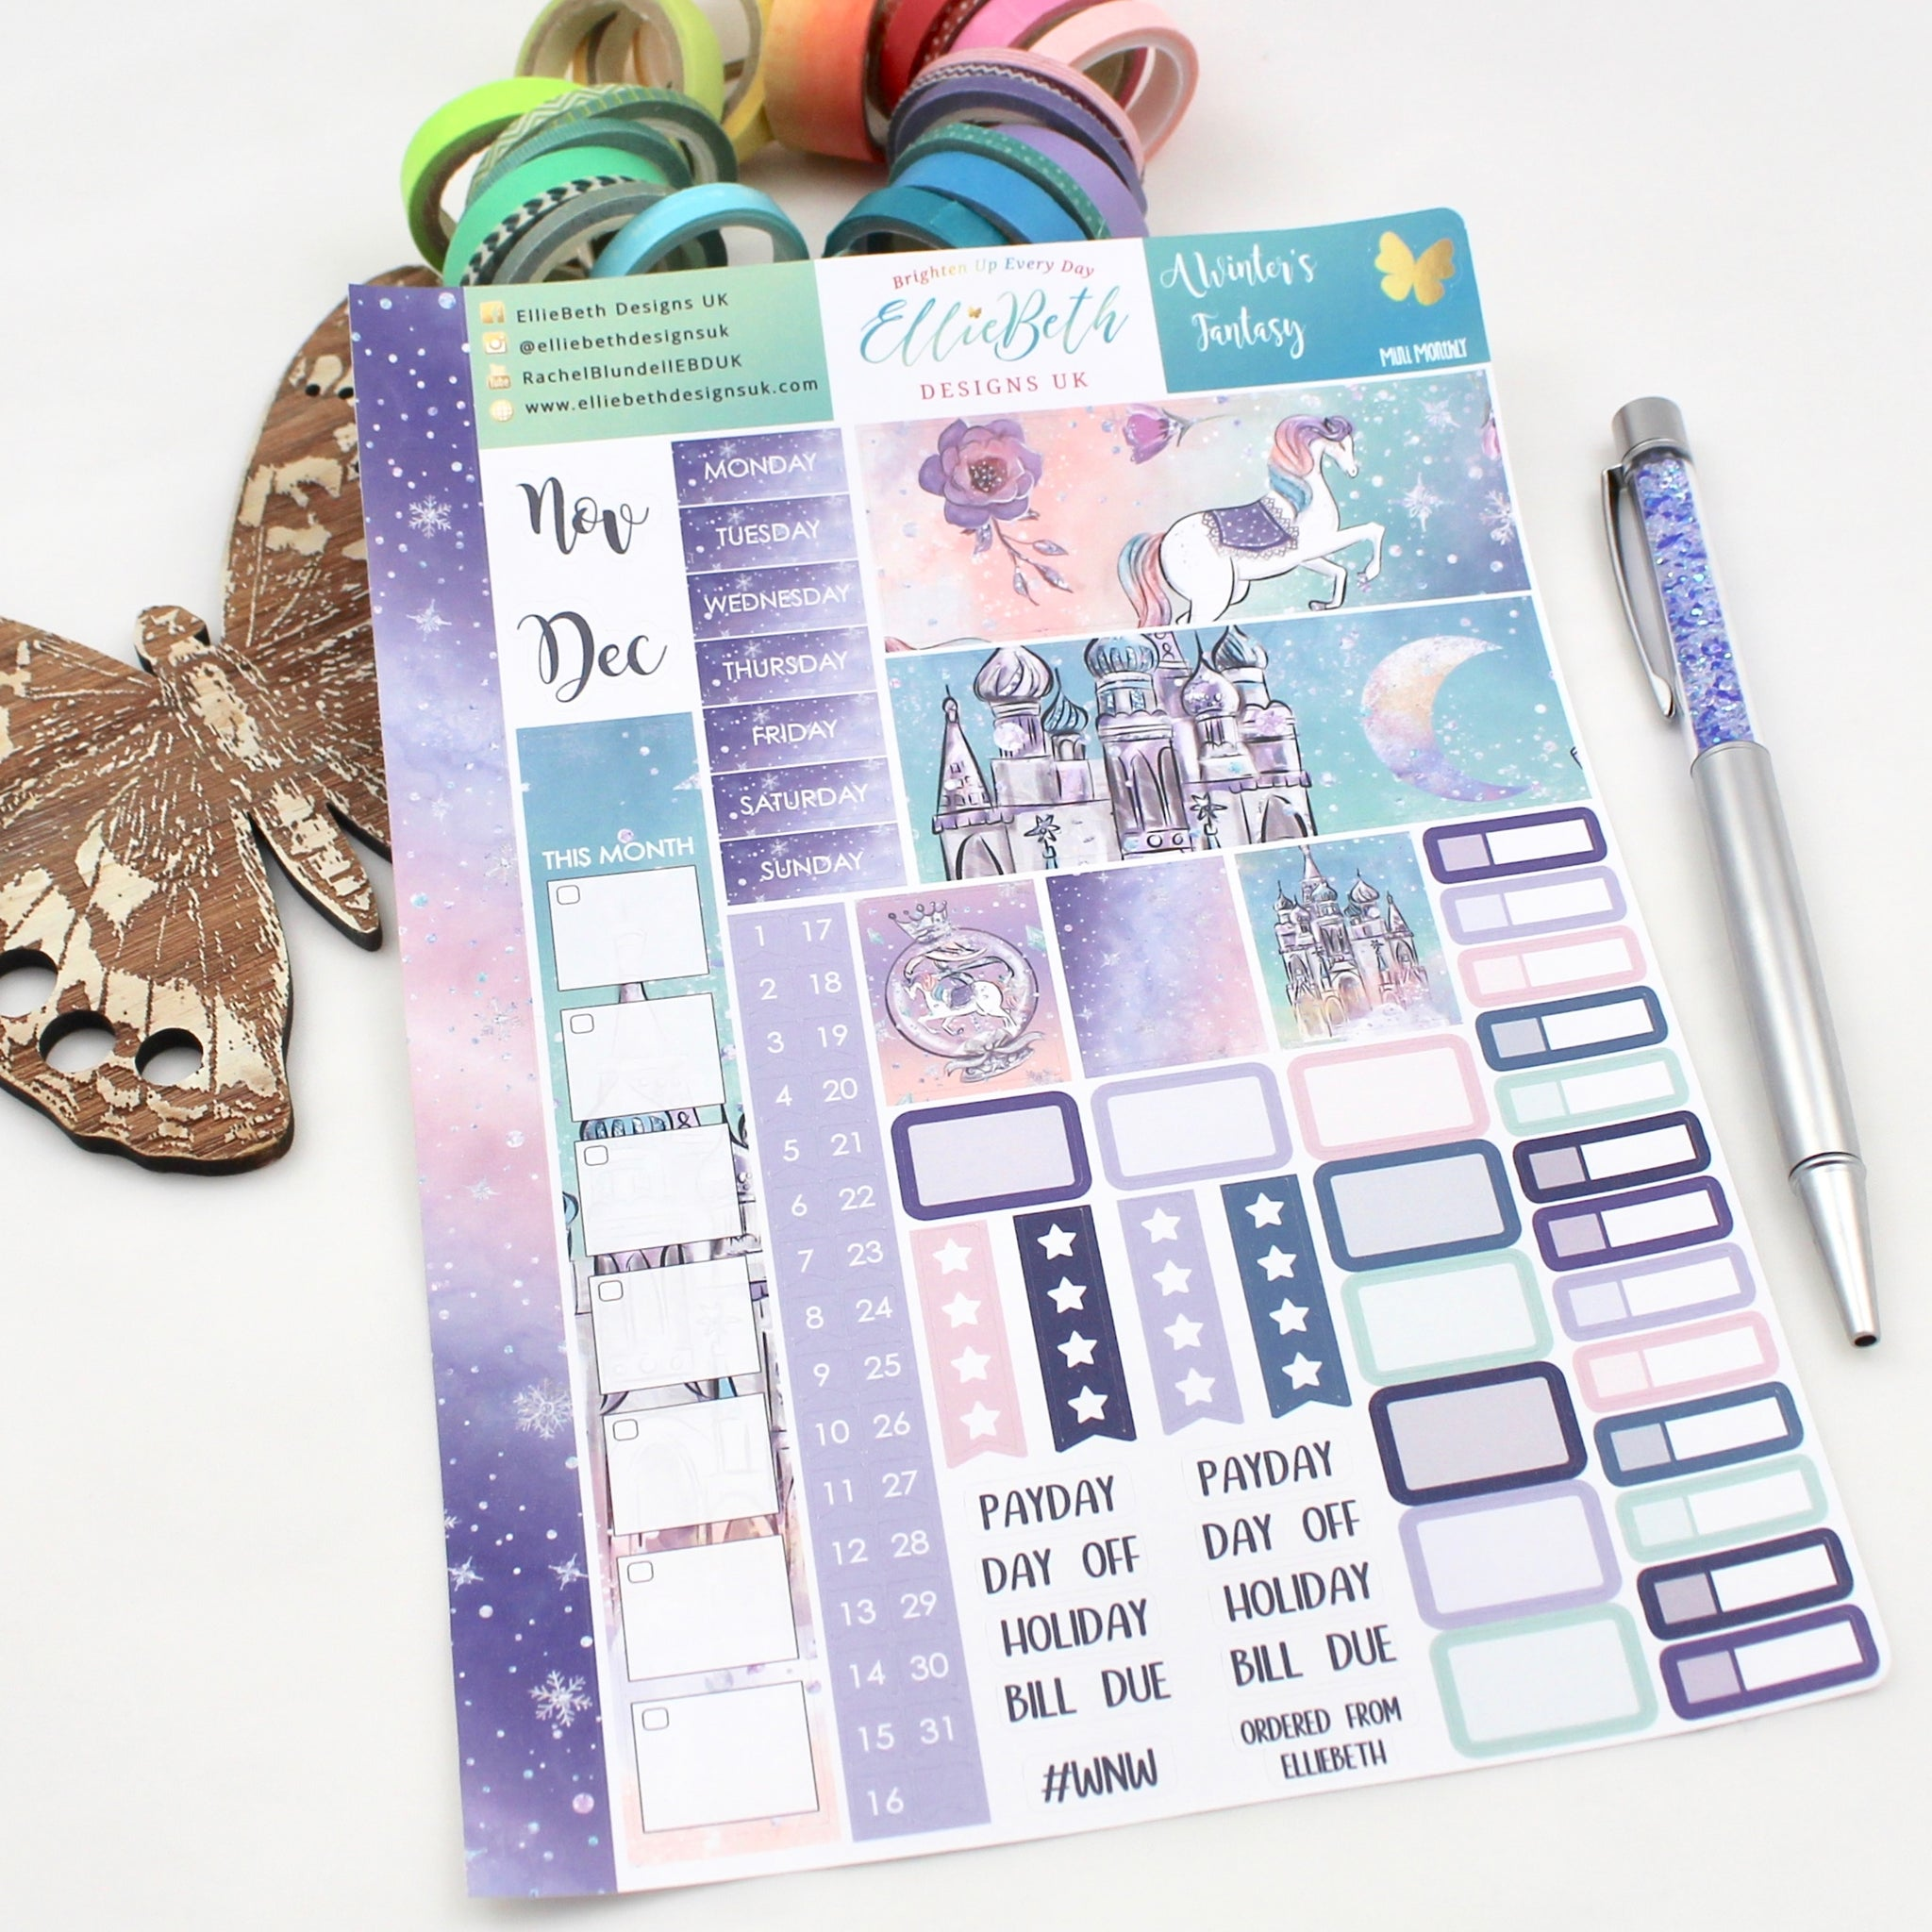 A Winter's Fantasy - Mini Monthly (Hobonichi Weeks compatible) - A5 binder ready planner stickers - EllieBeth Designs UK